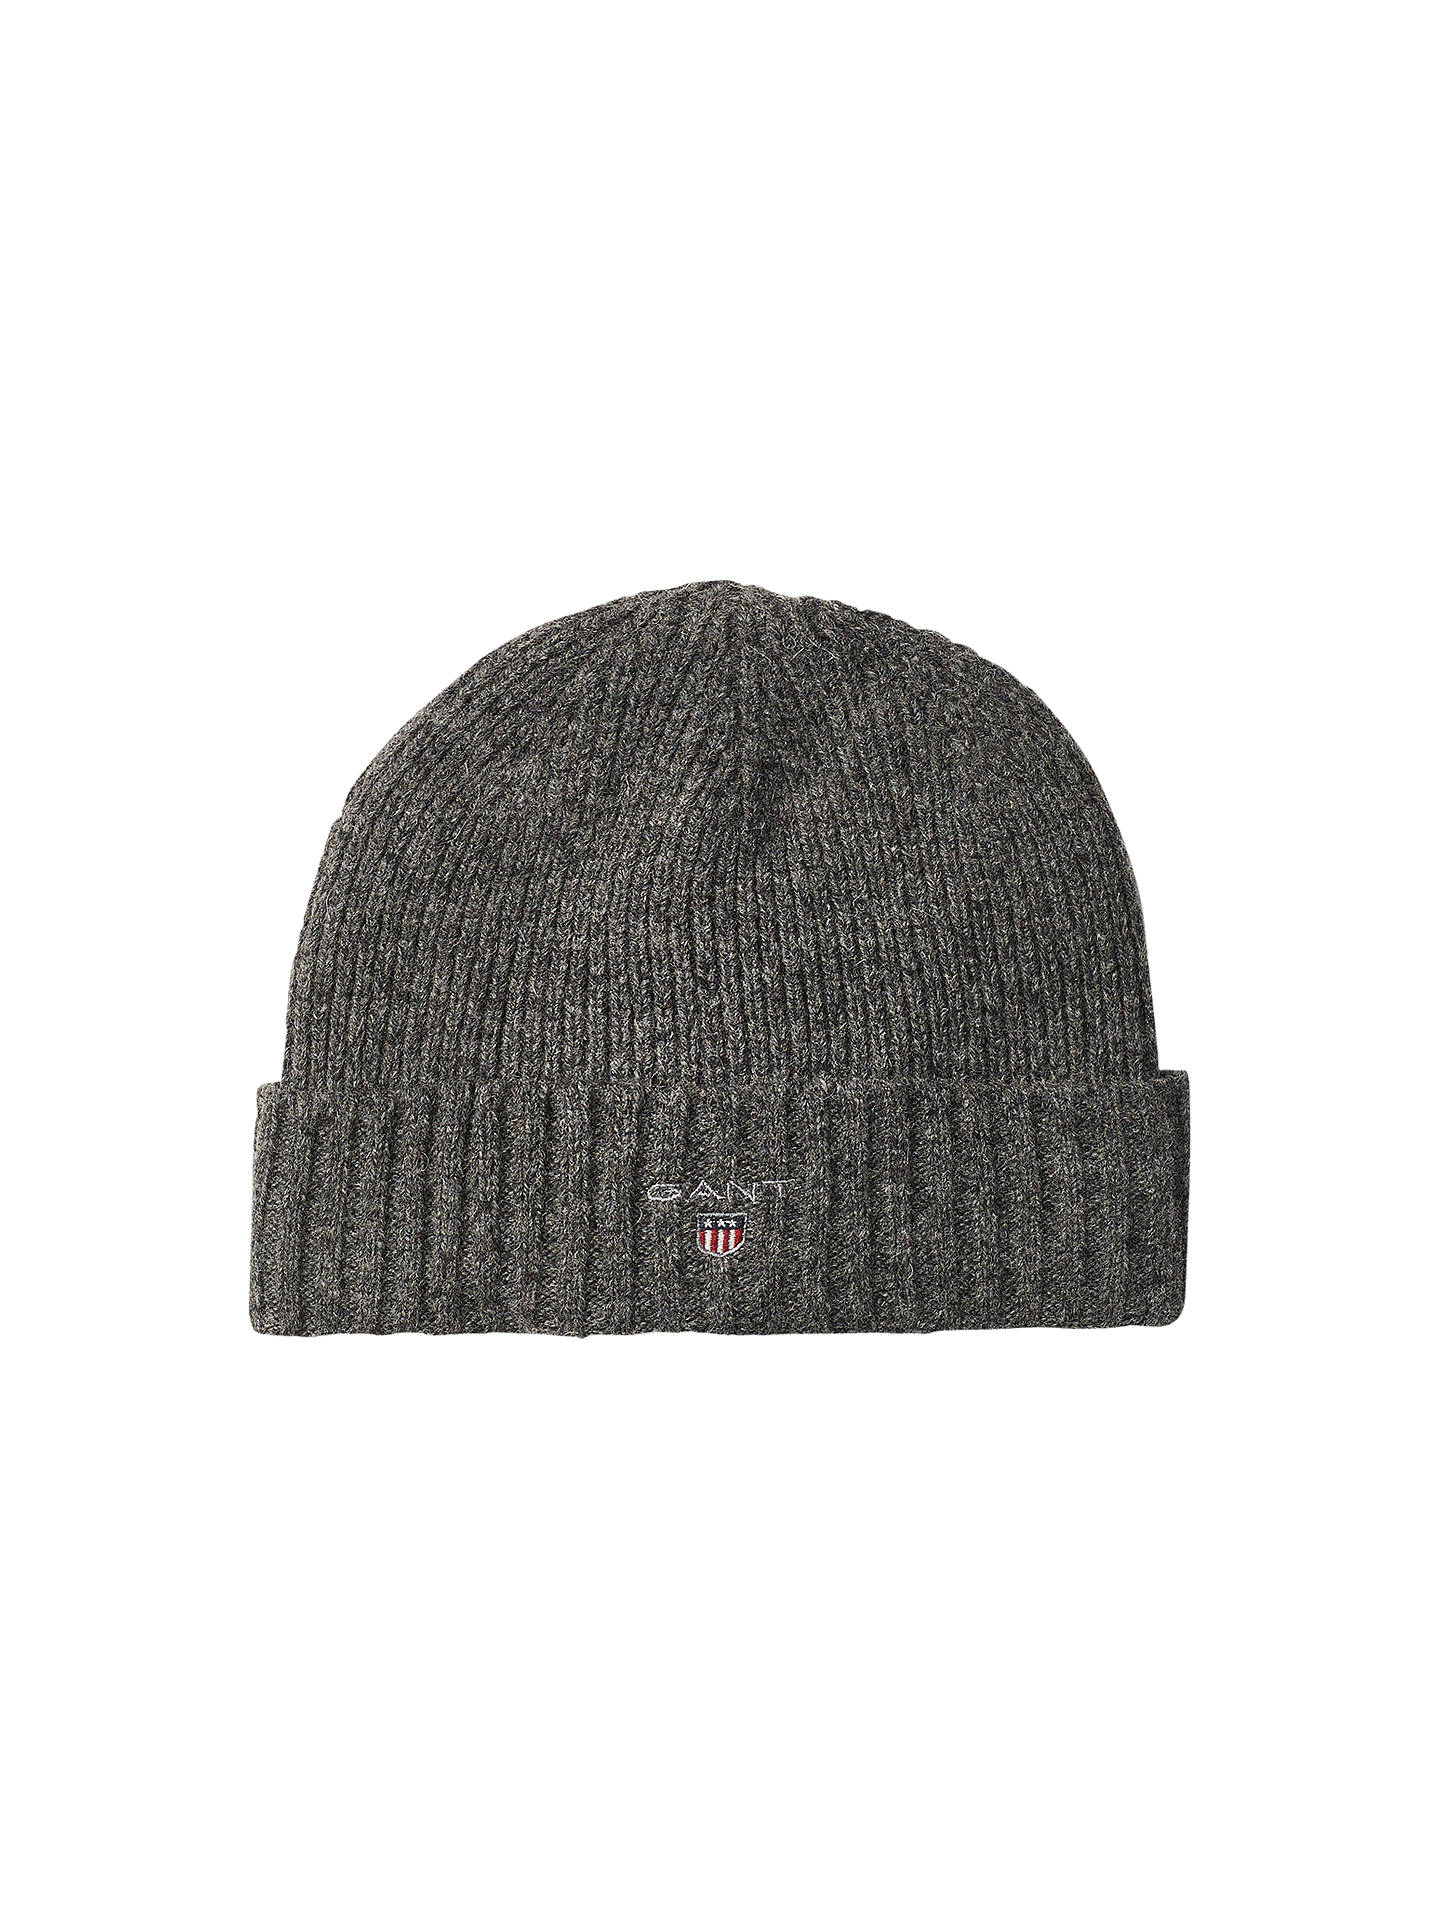 82098b0e GANT Lined Rib Beanie, One Size at John Lewis & Partners